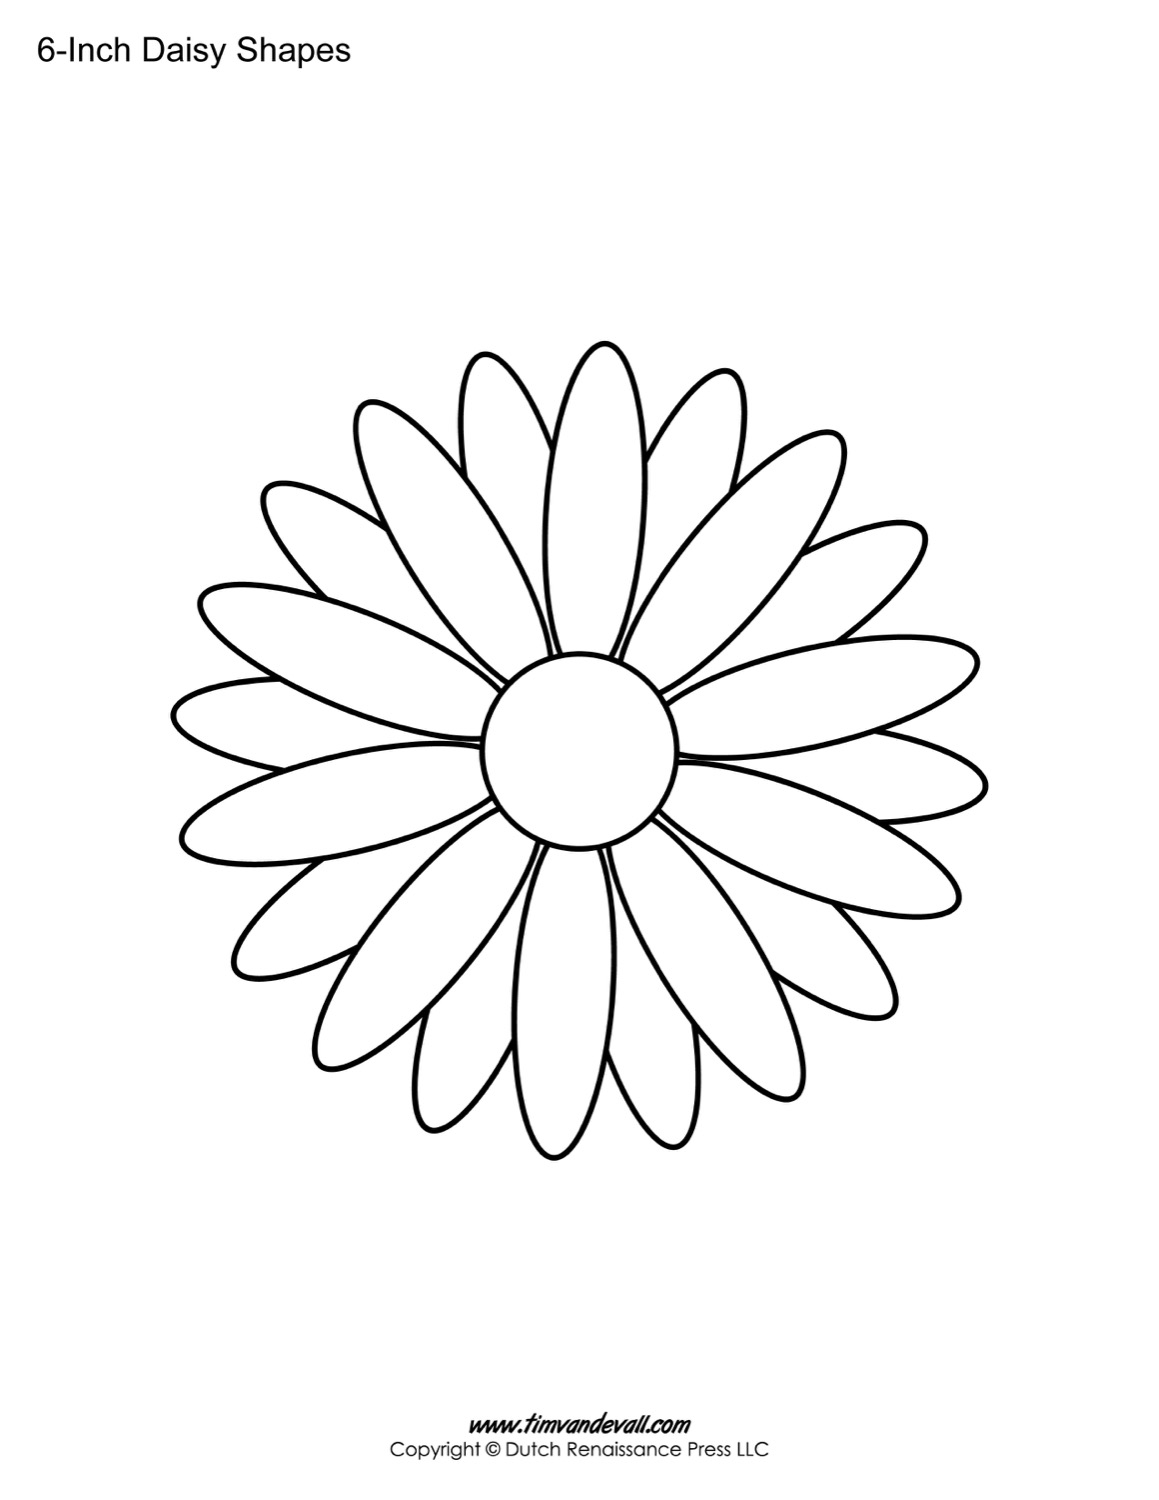 It is an image of Adorable Daisy Templates Printable